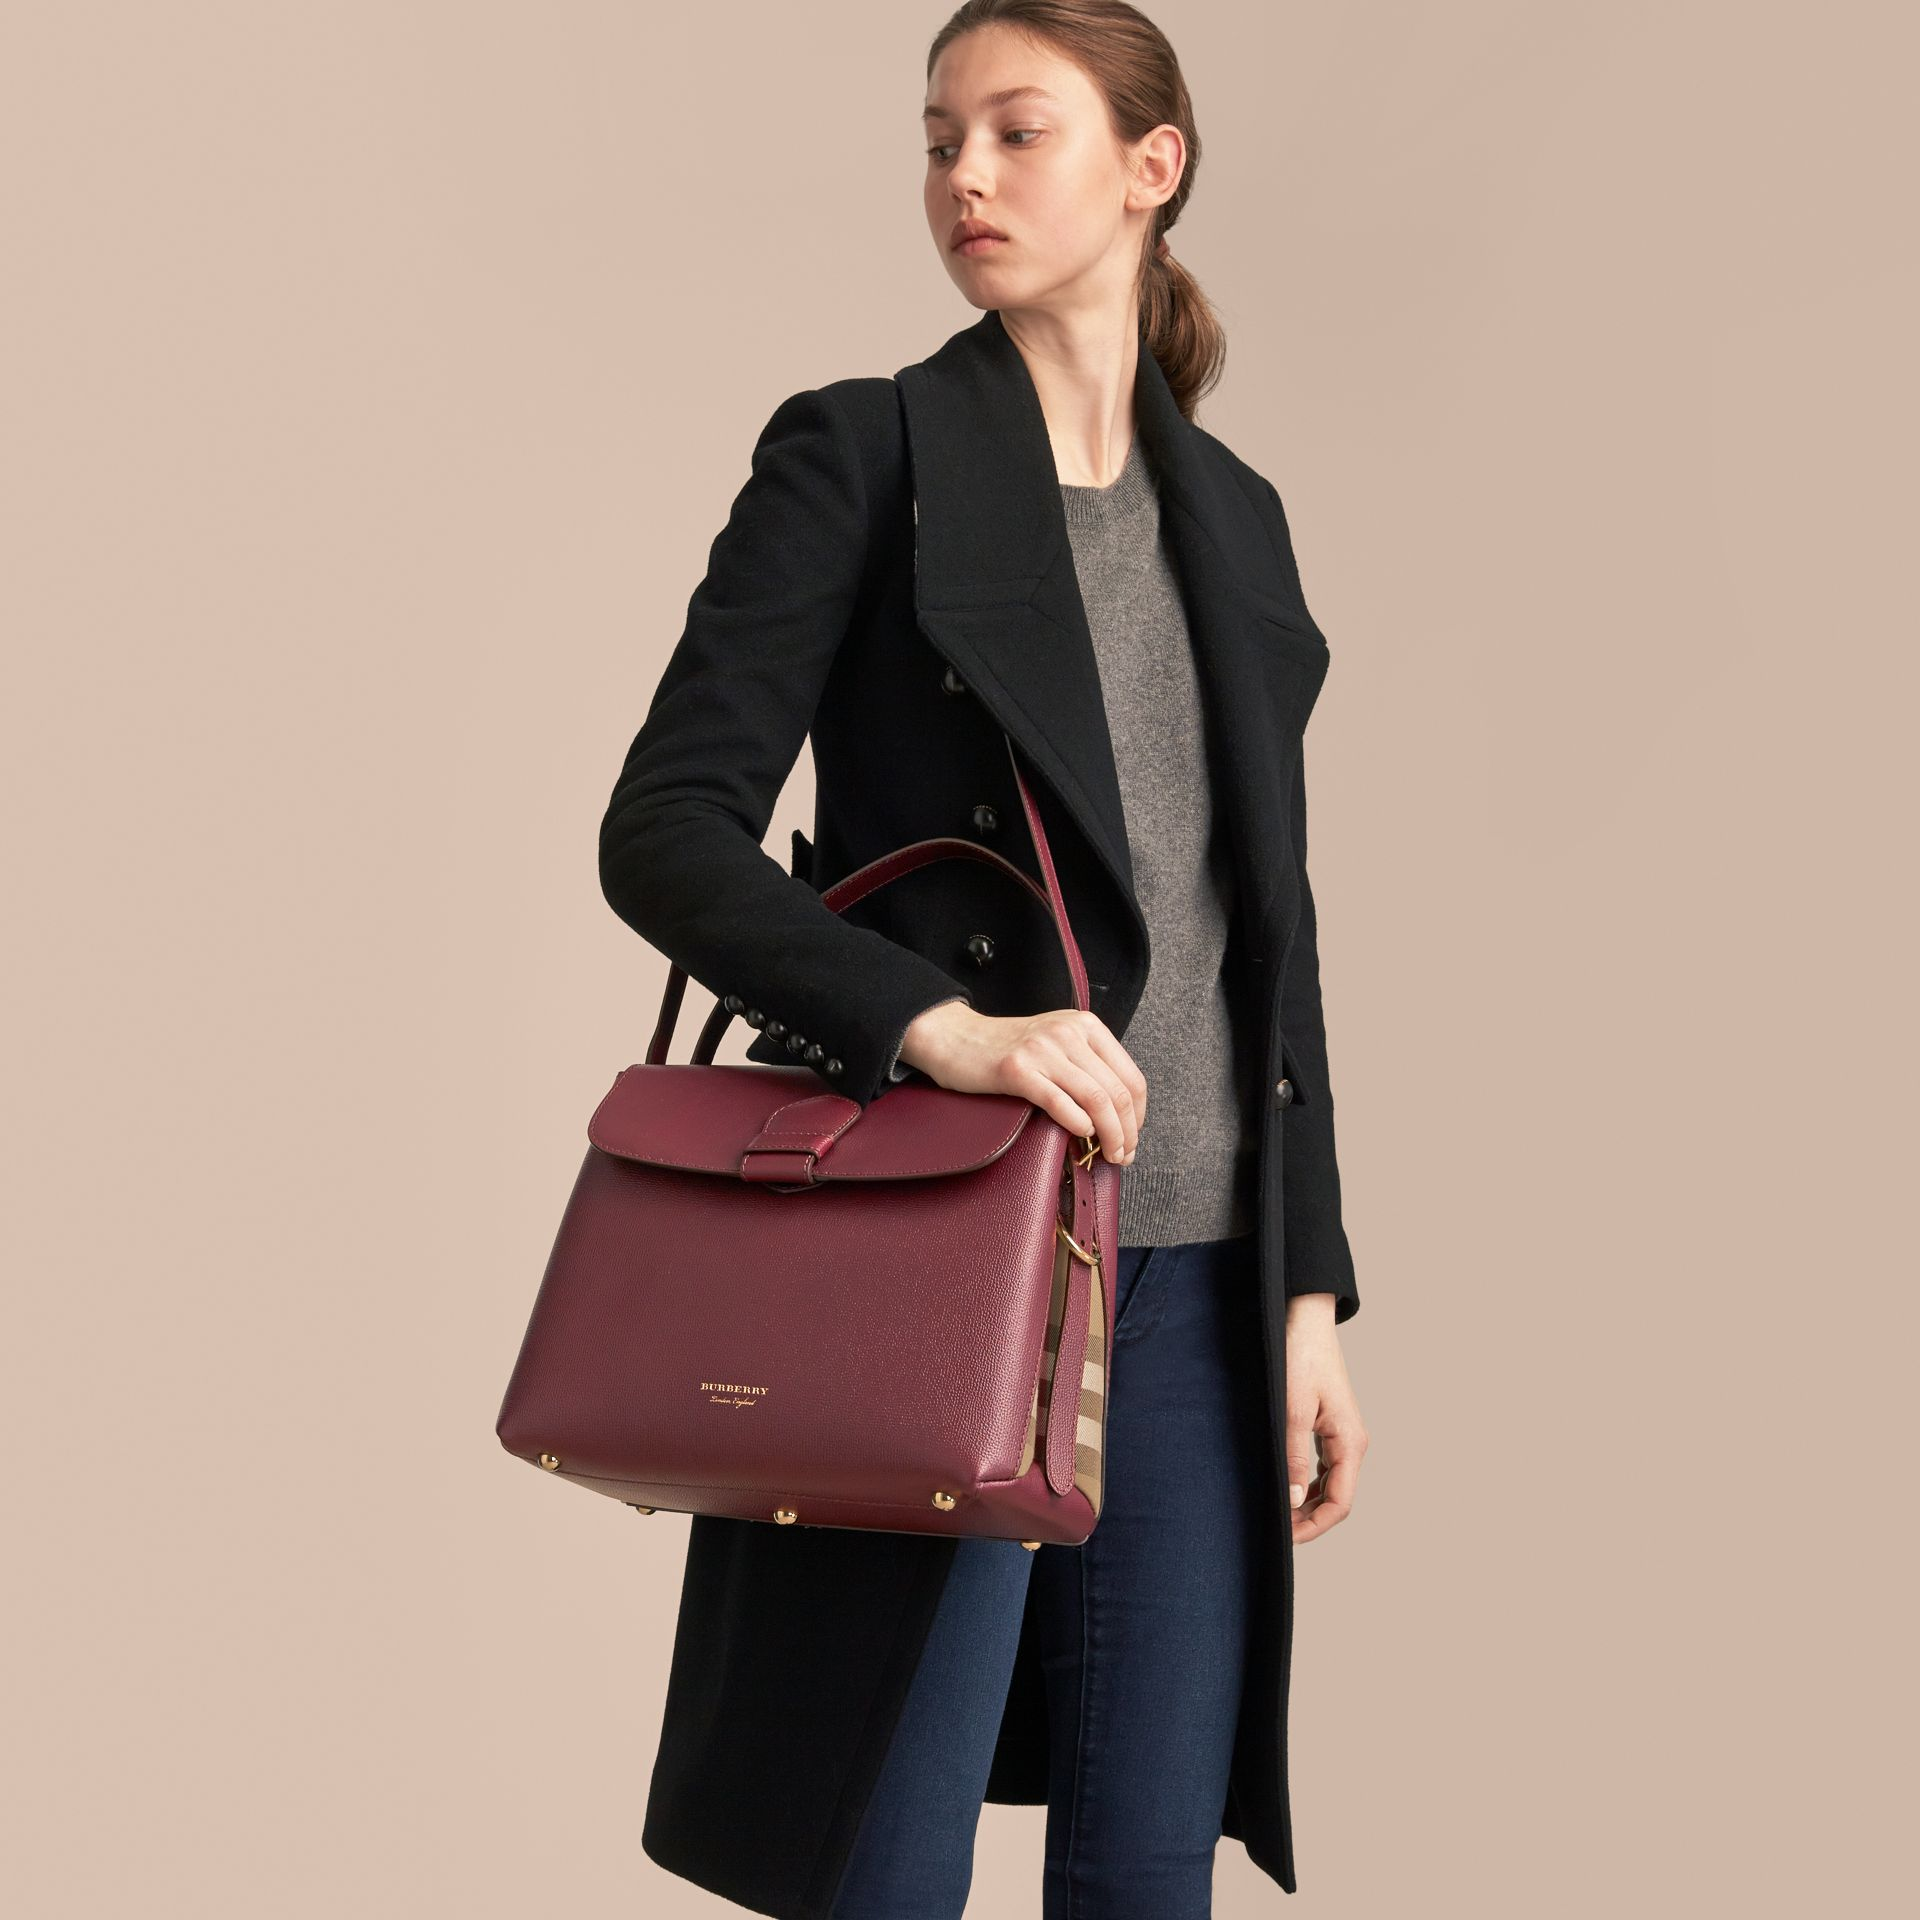 Medium Grainy Leather and House Check Tote Bag in Mahogany Red - Women | Burberry Hong Kong - gallery image 3